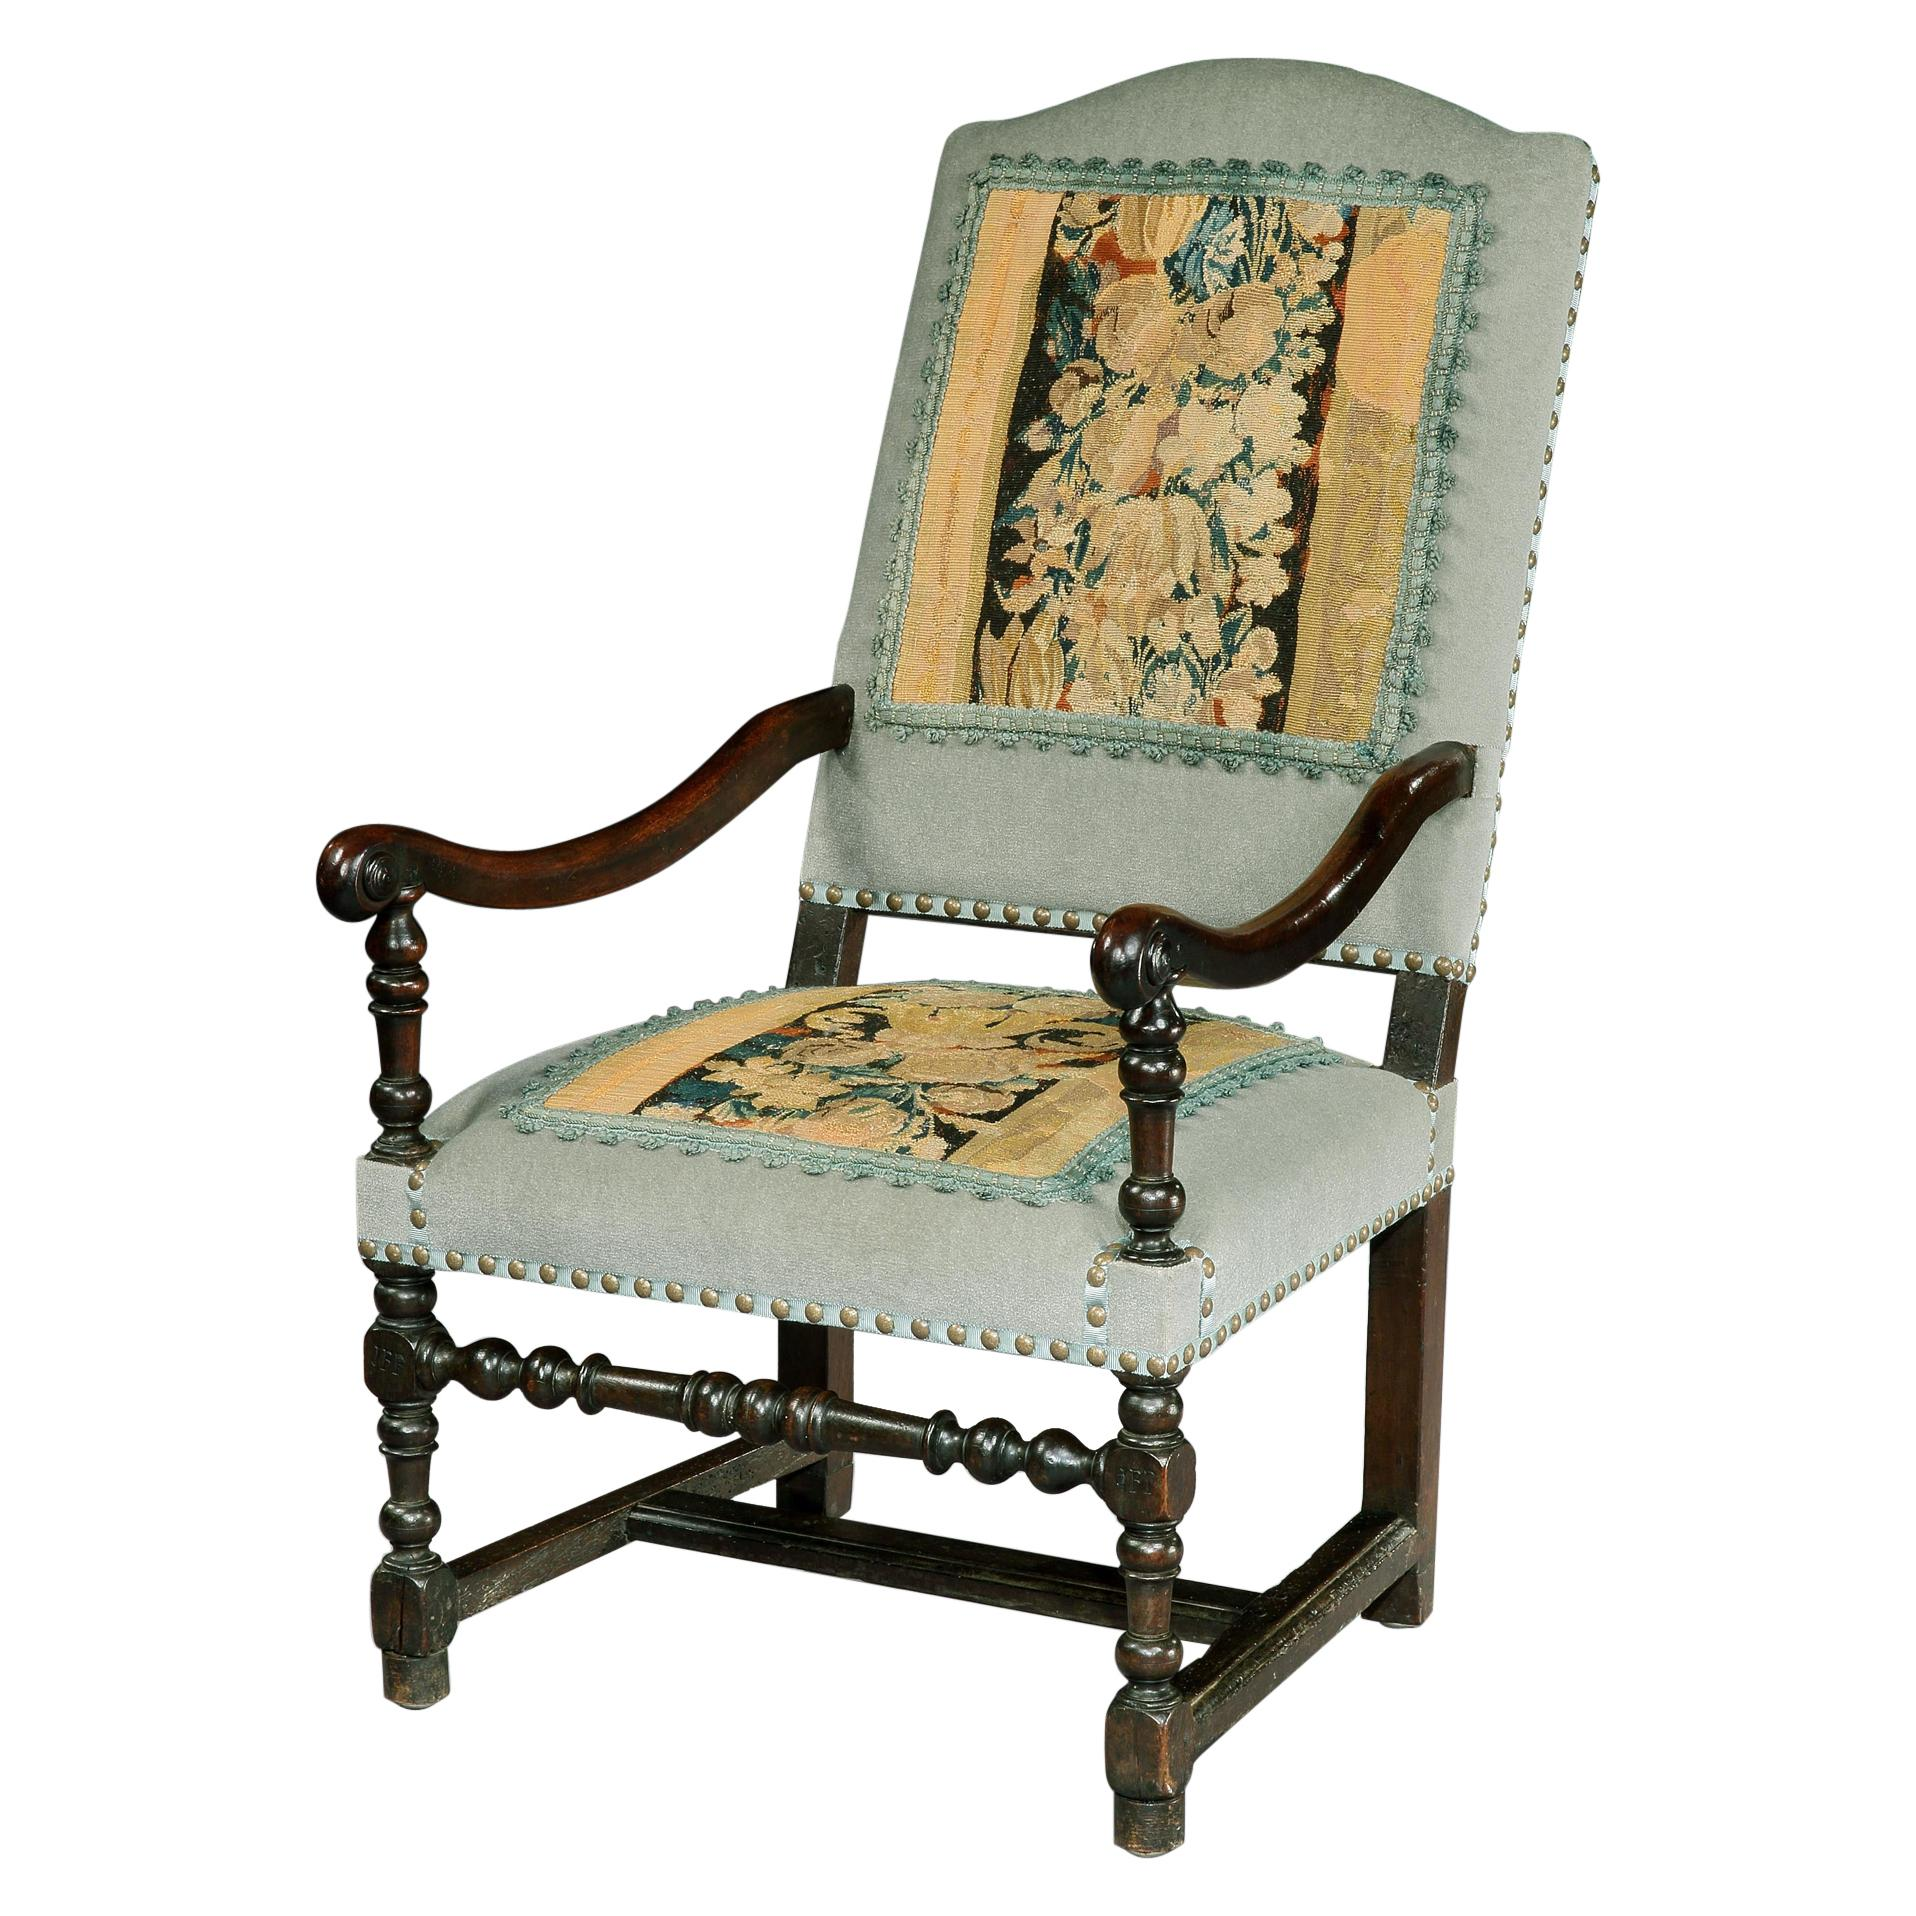 Armchair Commemorative Walnut Folk Initialed JFP dFP French Aubusson Tapestry